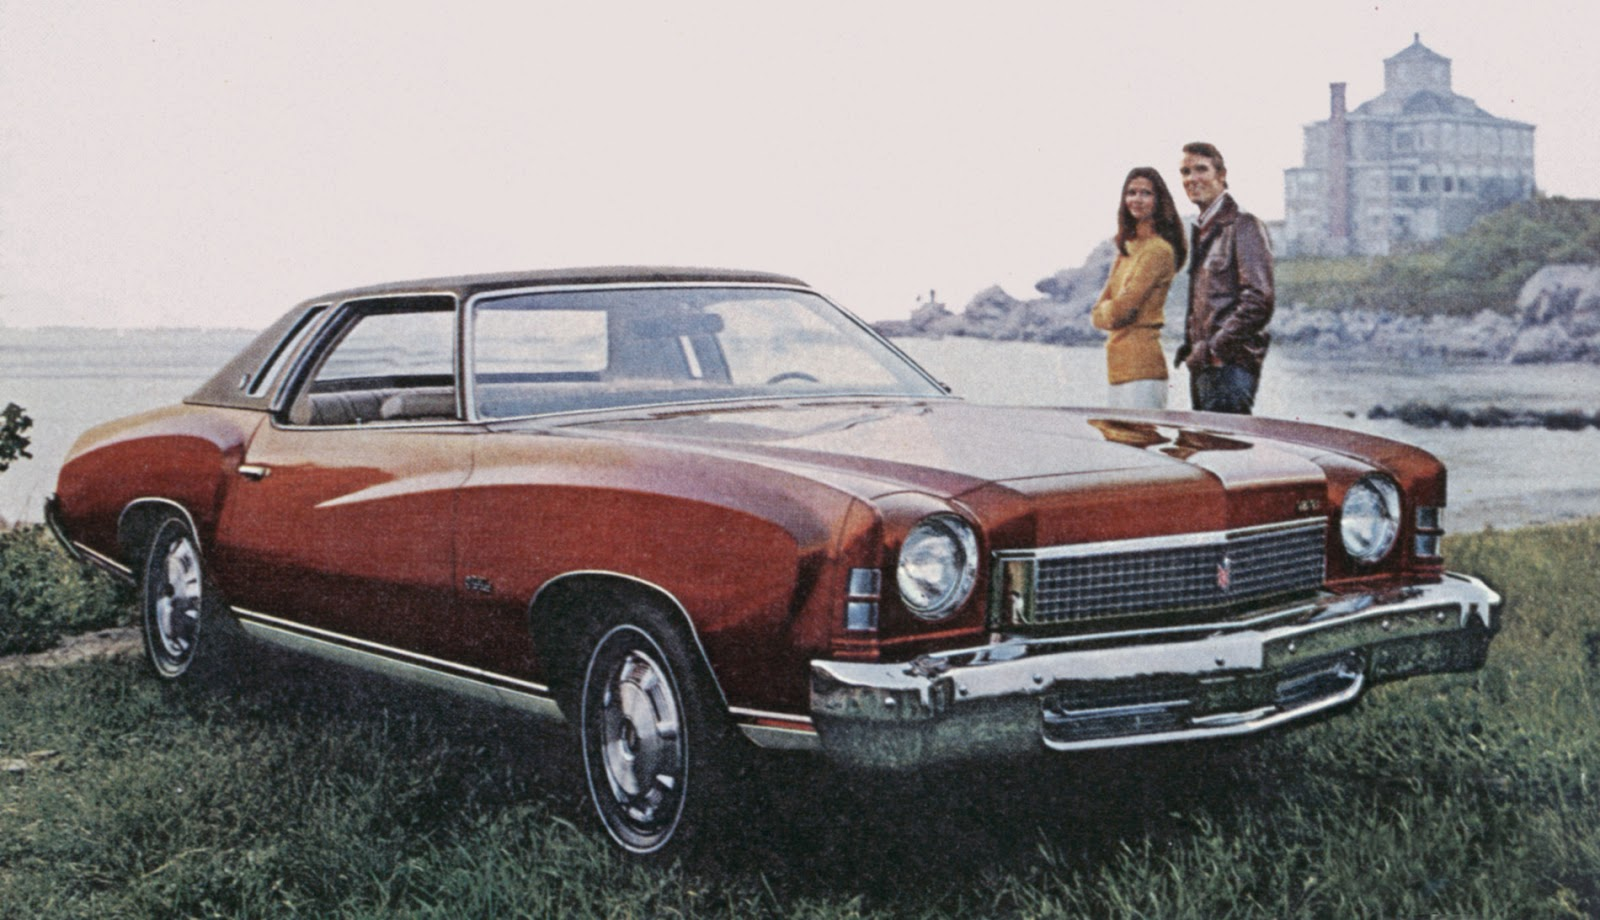 medium resolution of in 1973 monte carlo gained its own identity with sculpted fenders and elaborate grilles